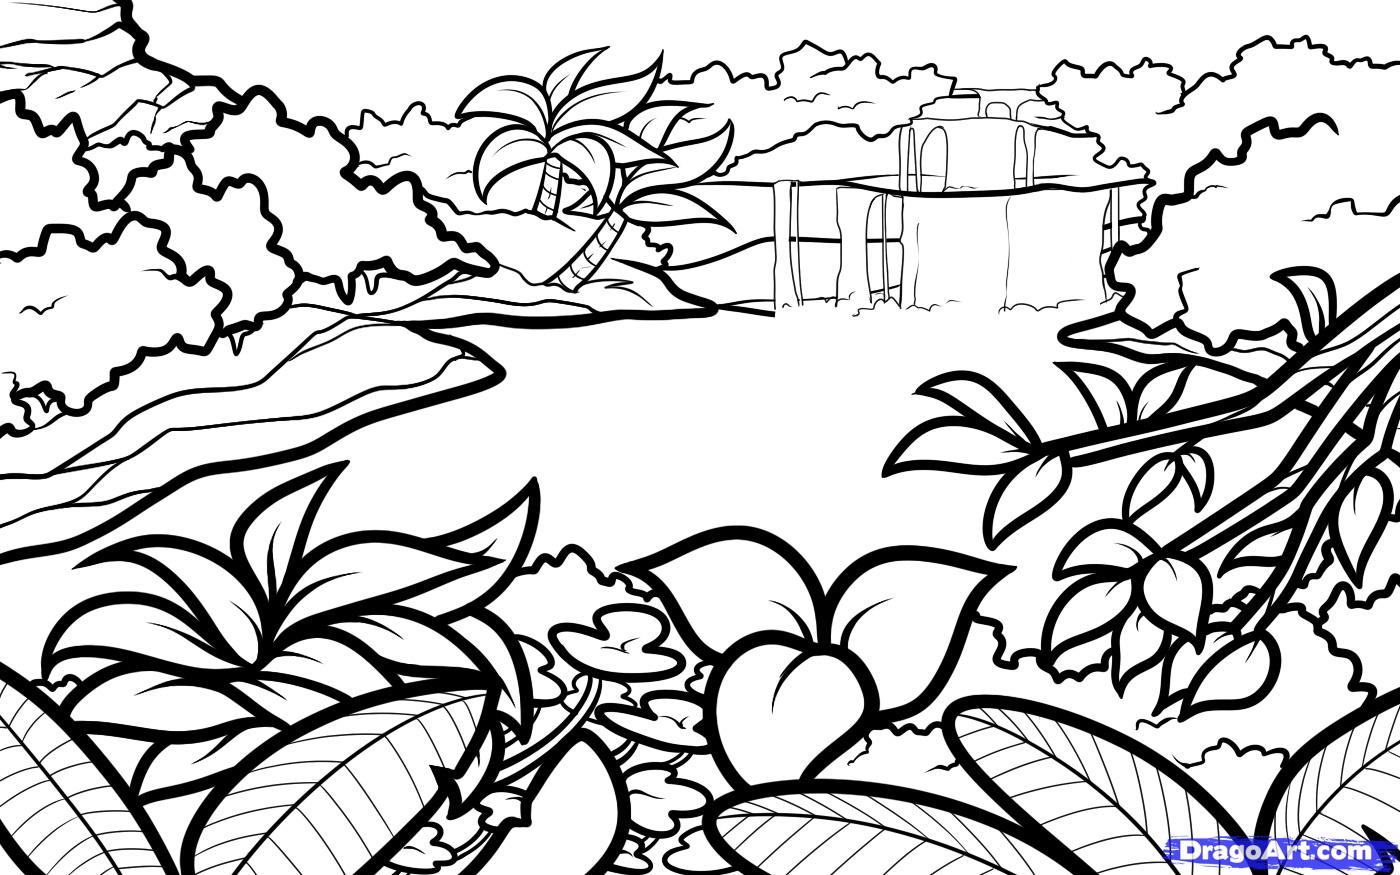 1400x875 Easy Landscape Drawings Step By Step How To Draw Landscape